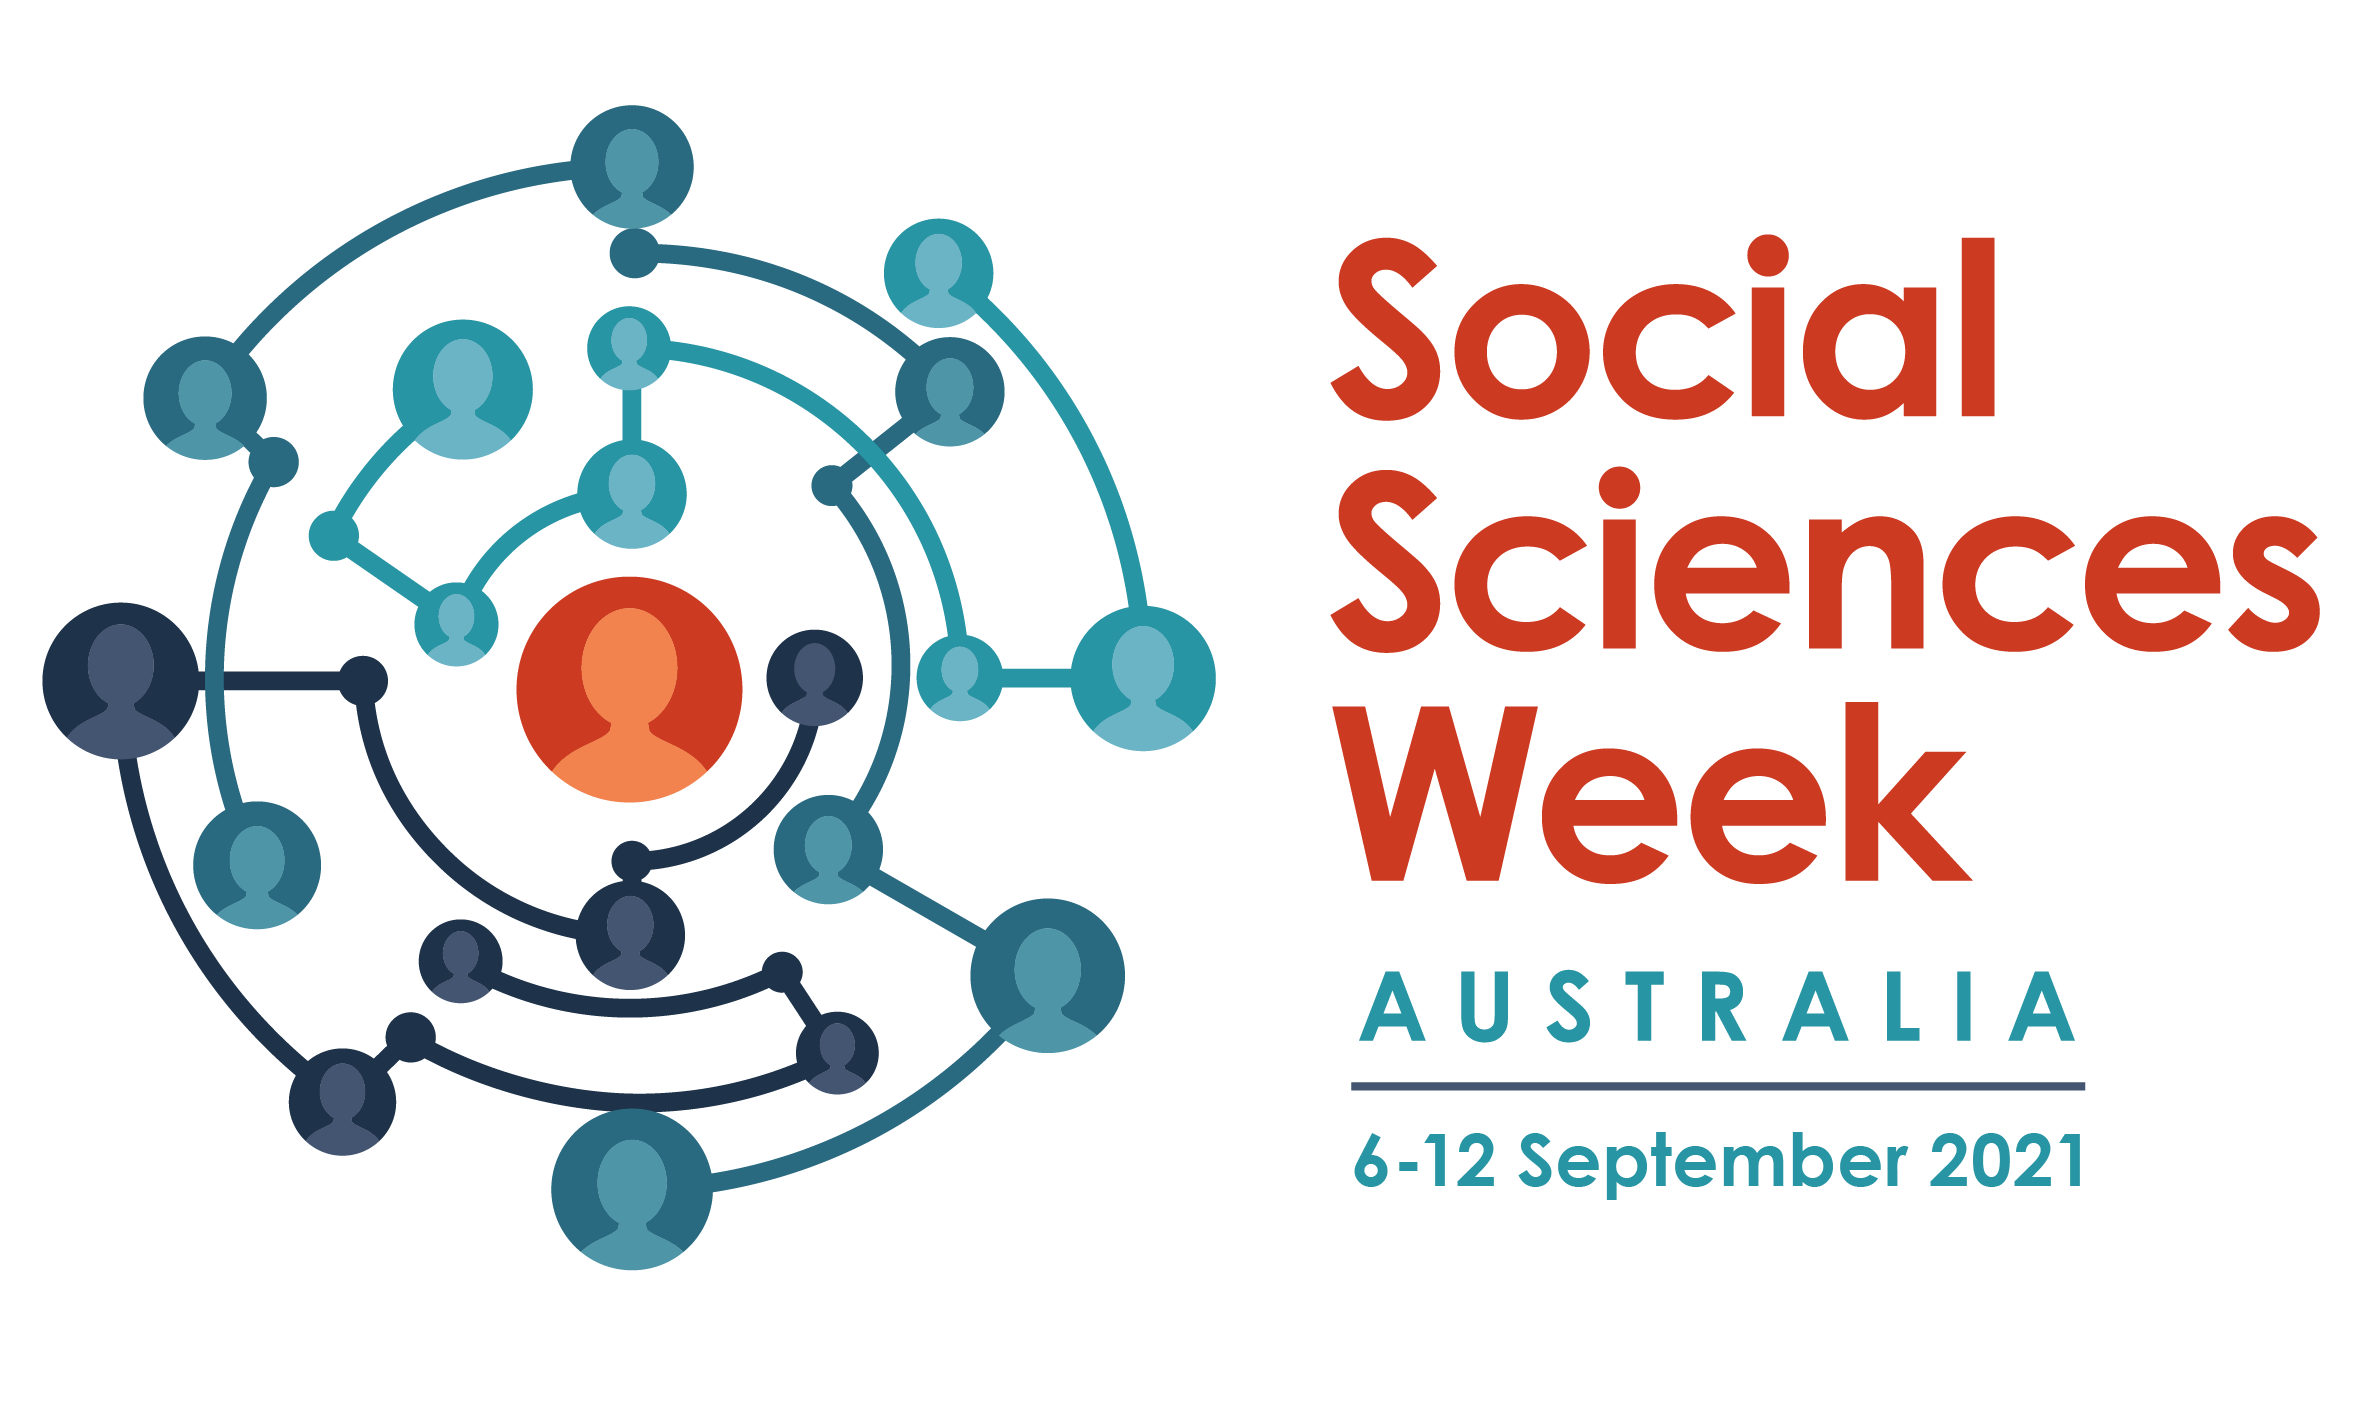 This event coincides with Social Sciences Week